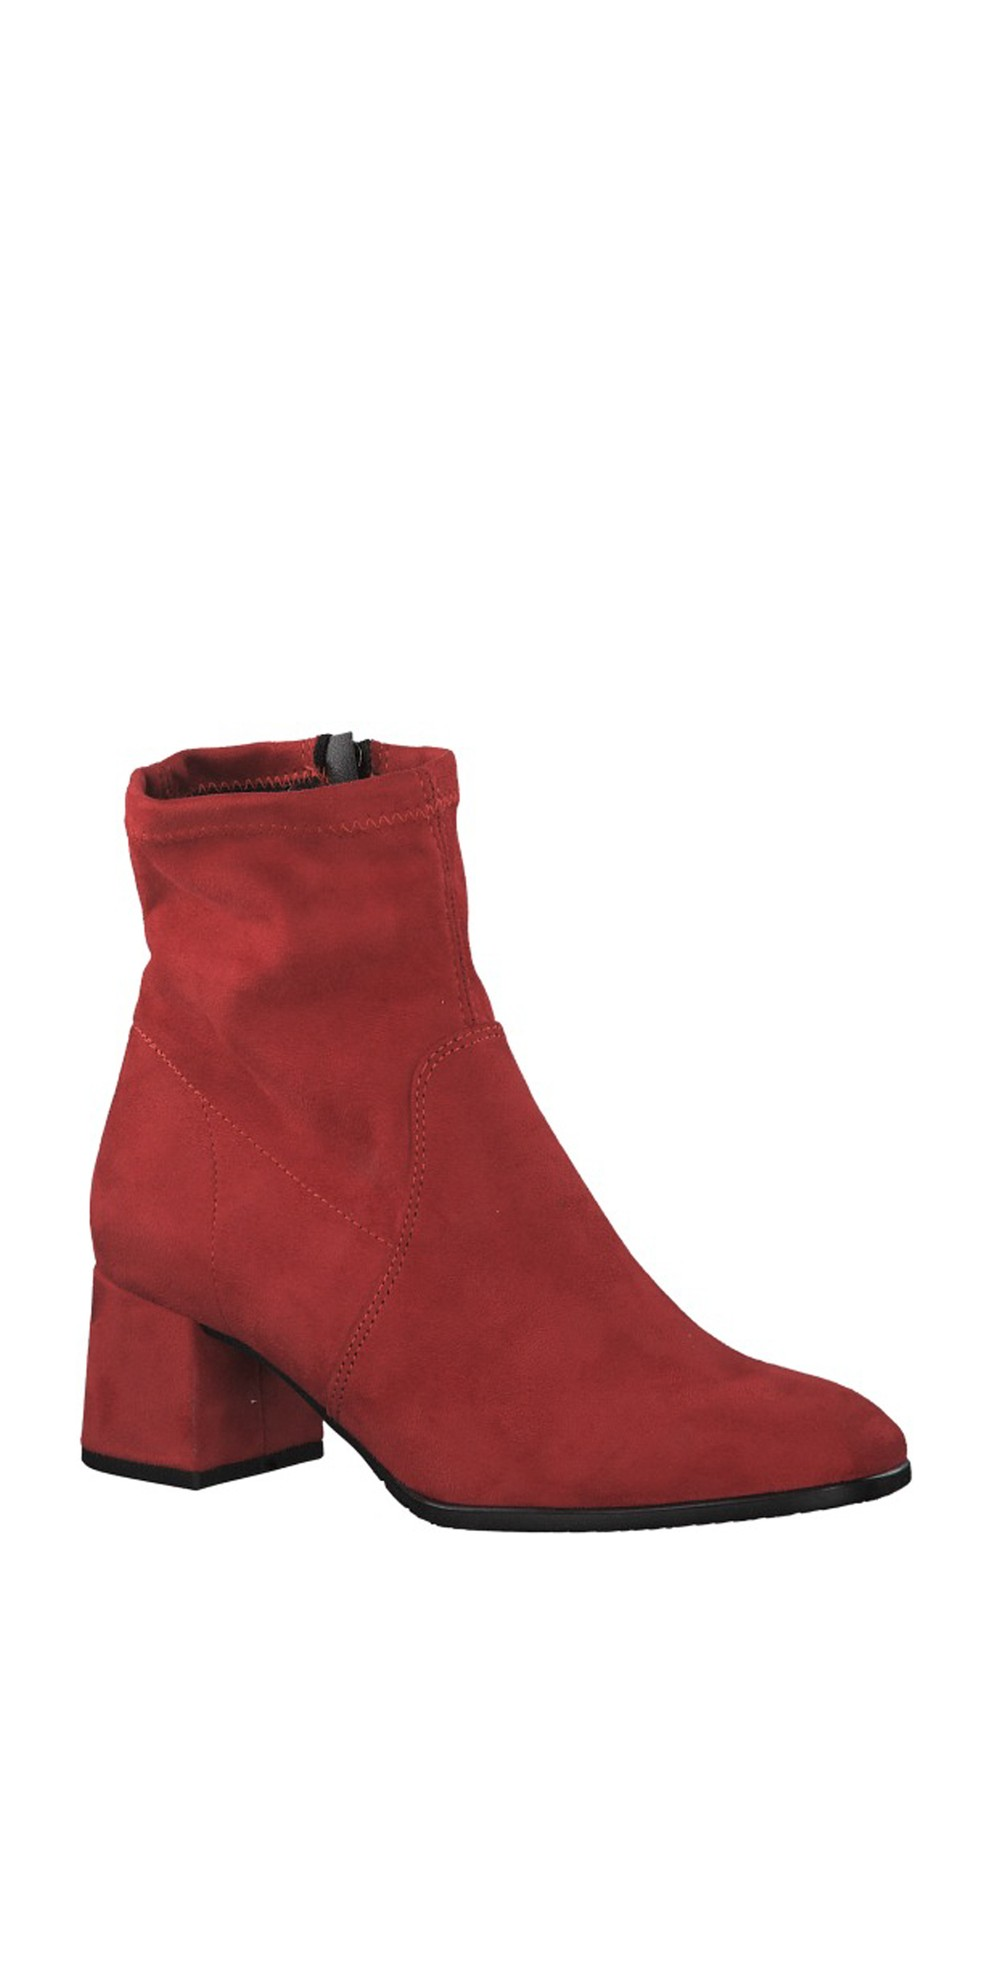 Lipstick Nadda Stretch Ankle Boot Block Heel